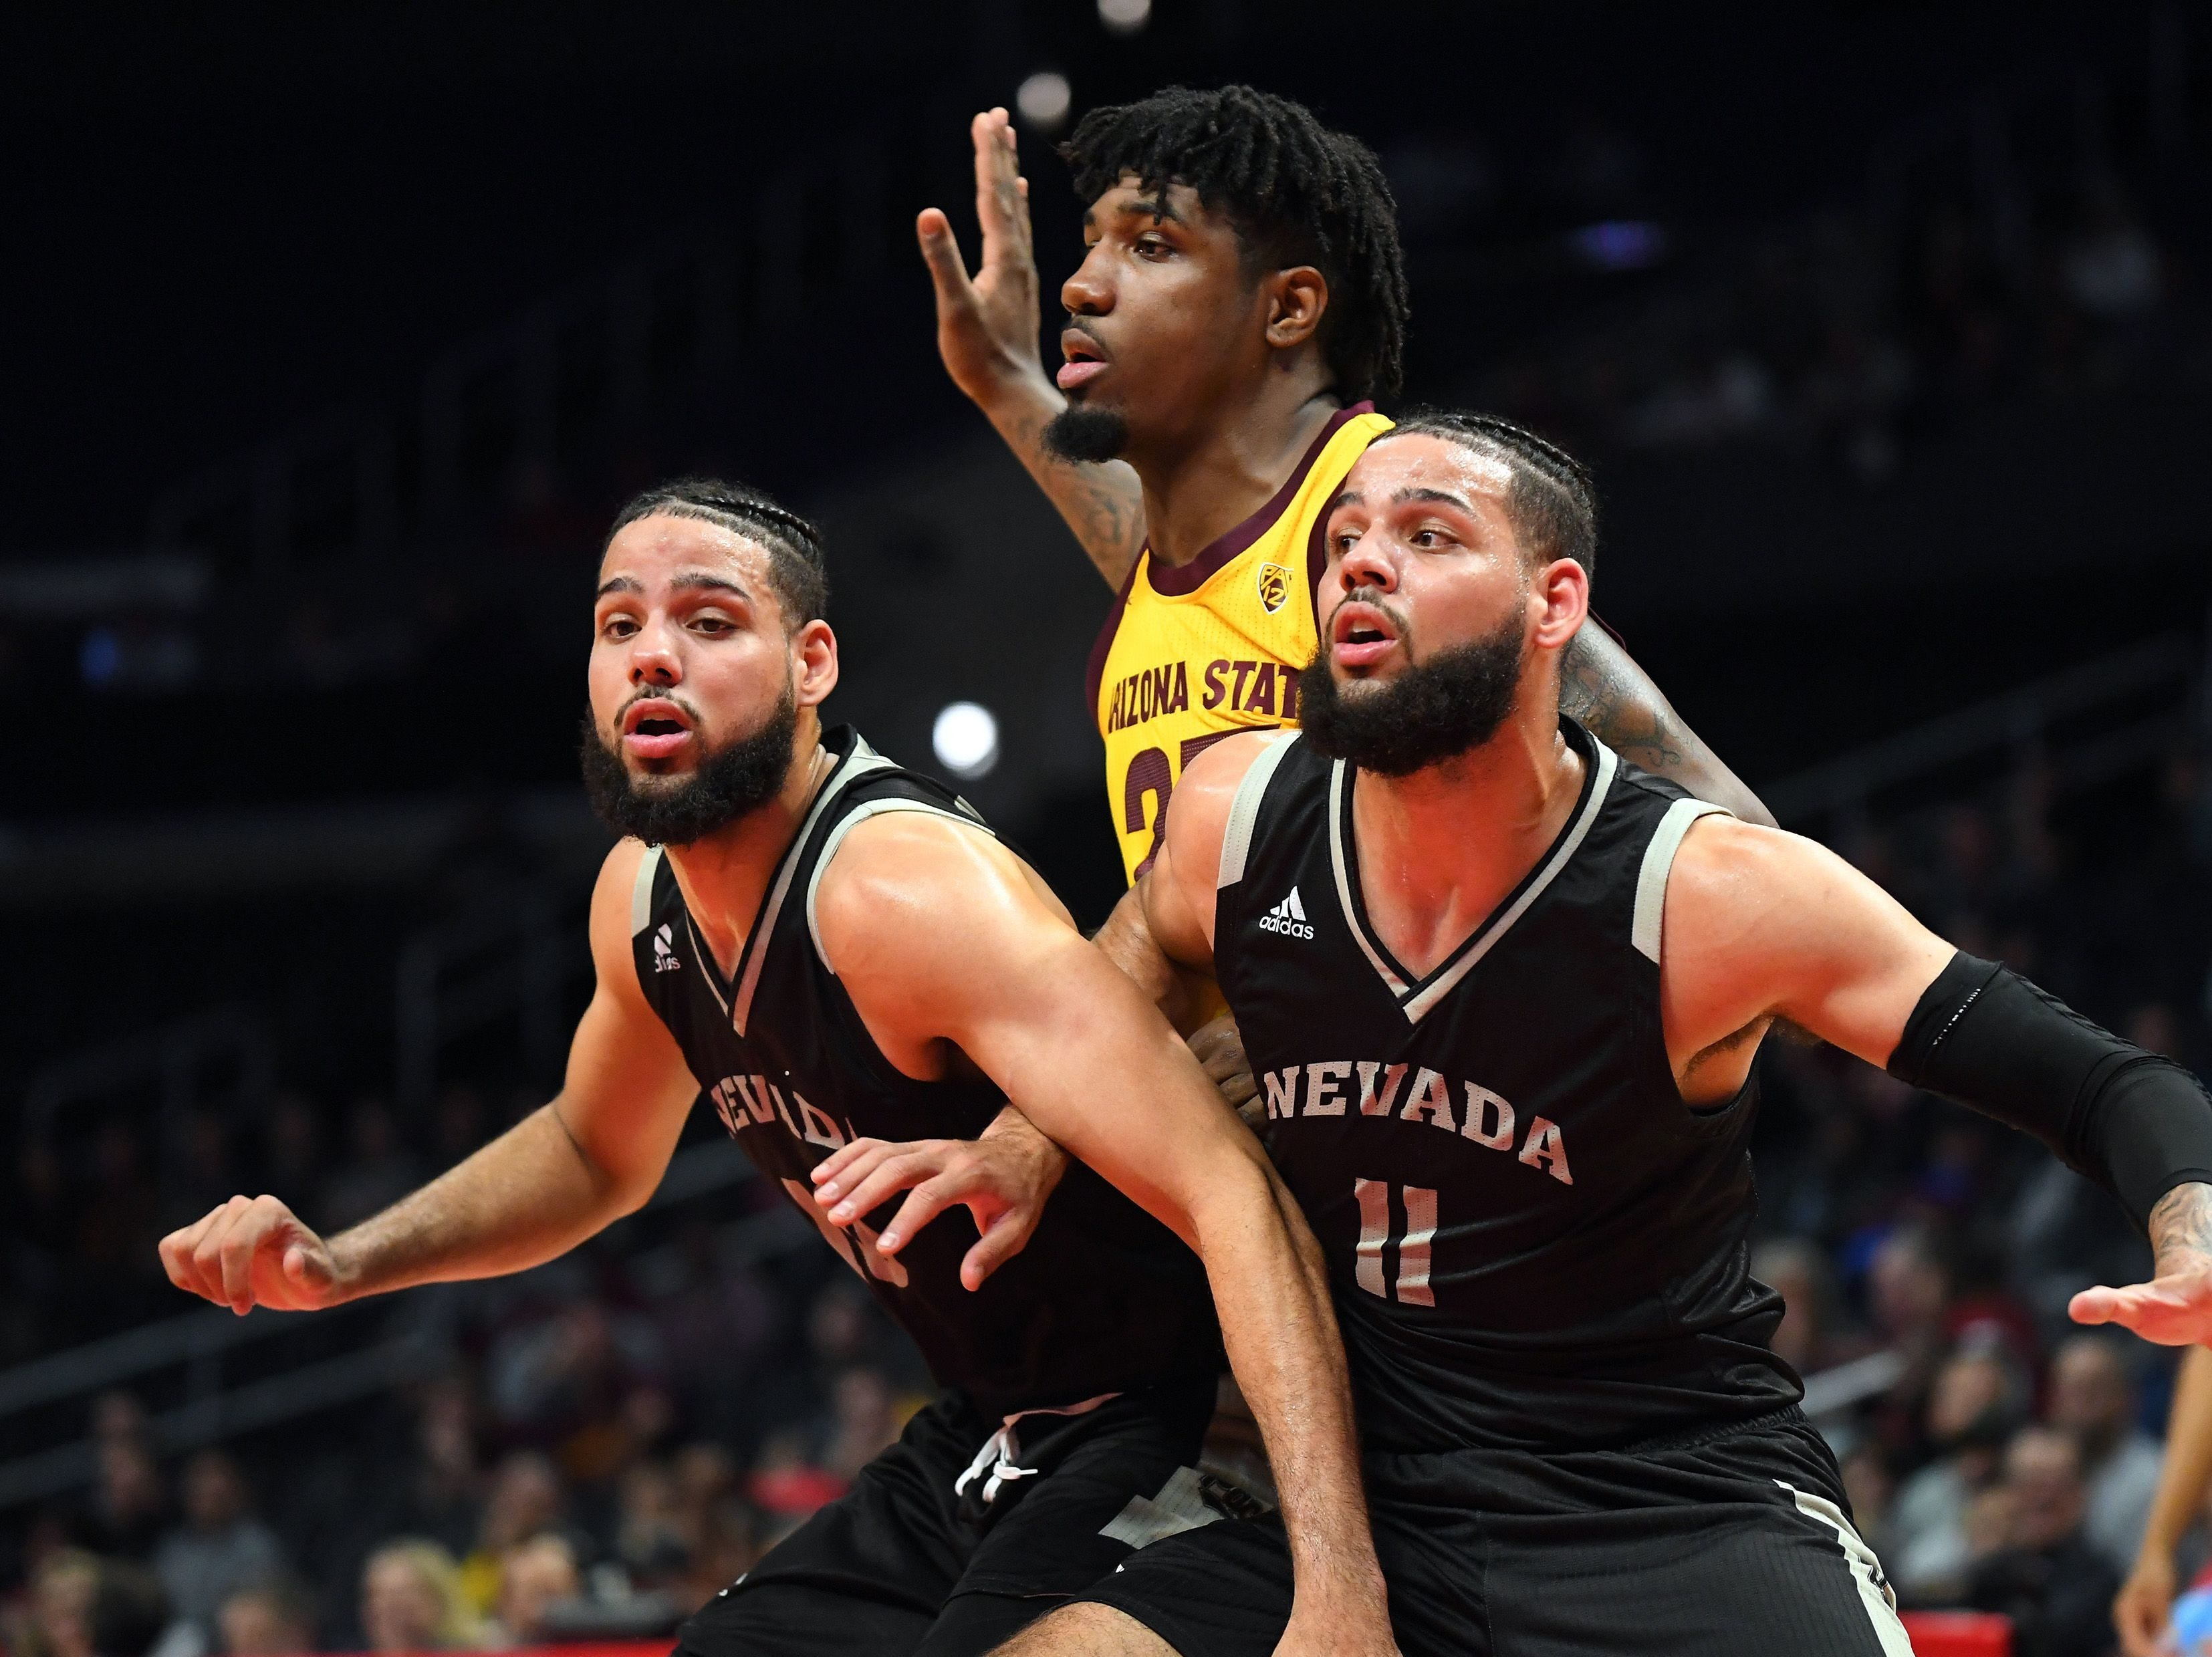 Nevada Wolf Pack forward Cody Martin (11) and forward Caleb Martin (10) box out Arizona State Sun Devils forward Romello White (23) under the basket in the first half of the game at Staples Center.